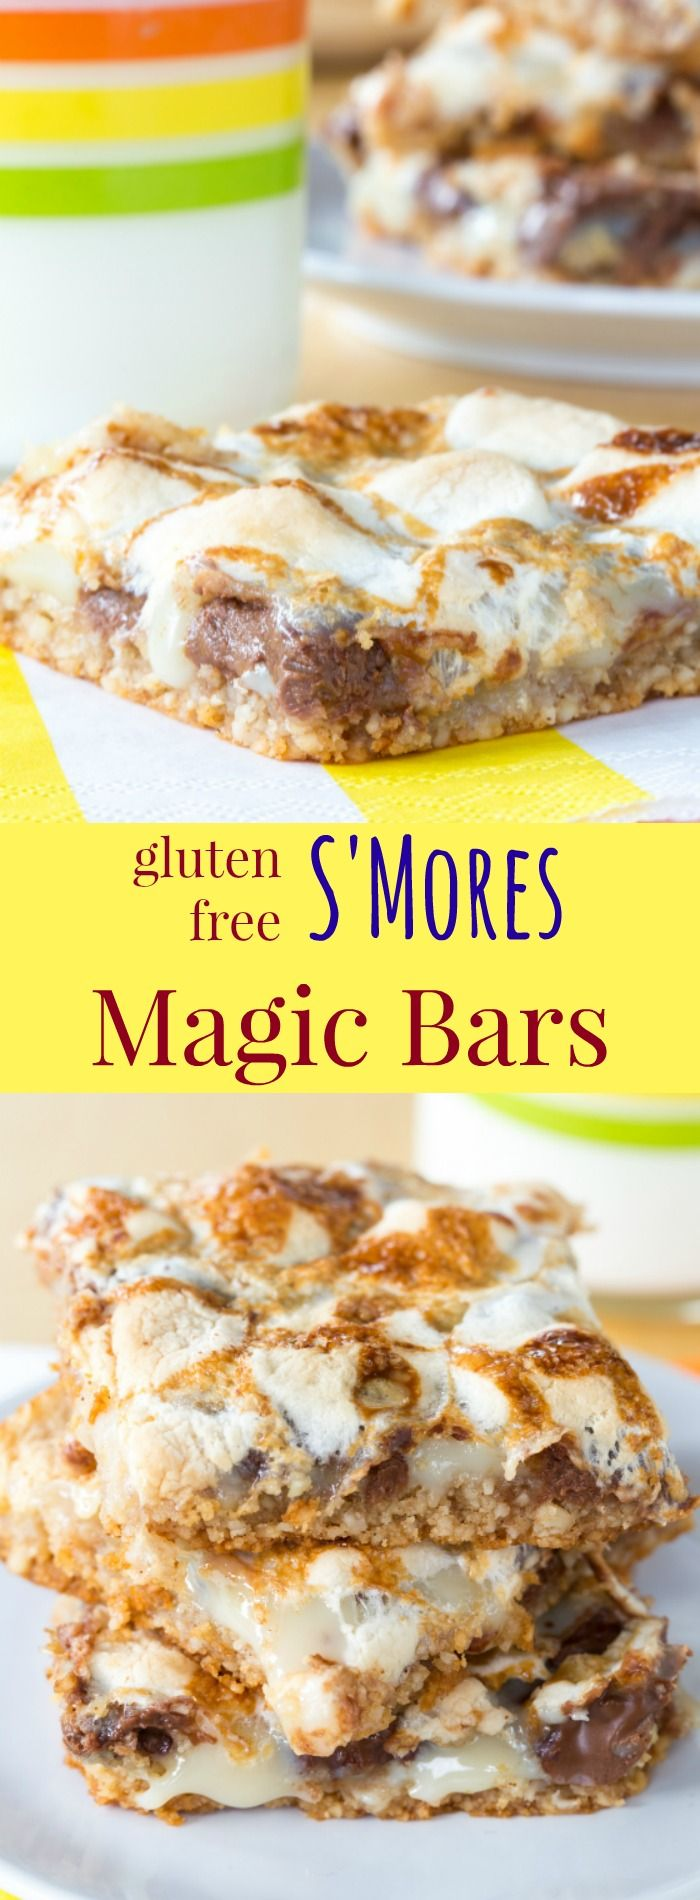 17 Best images about Must try Gluten Free on Pinterest ...